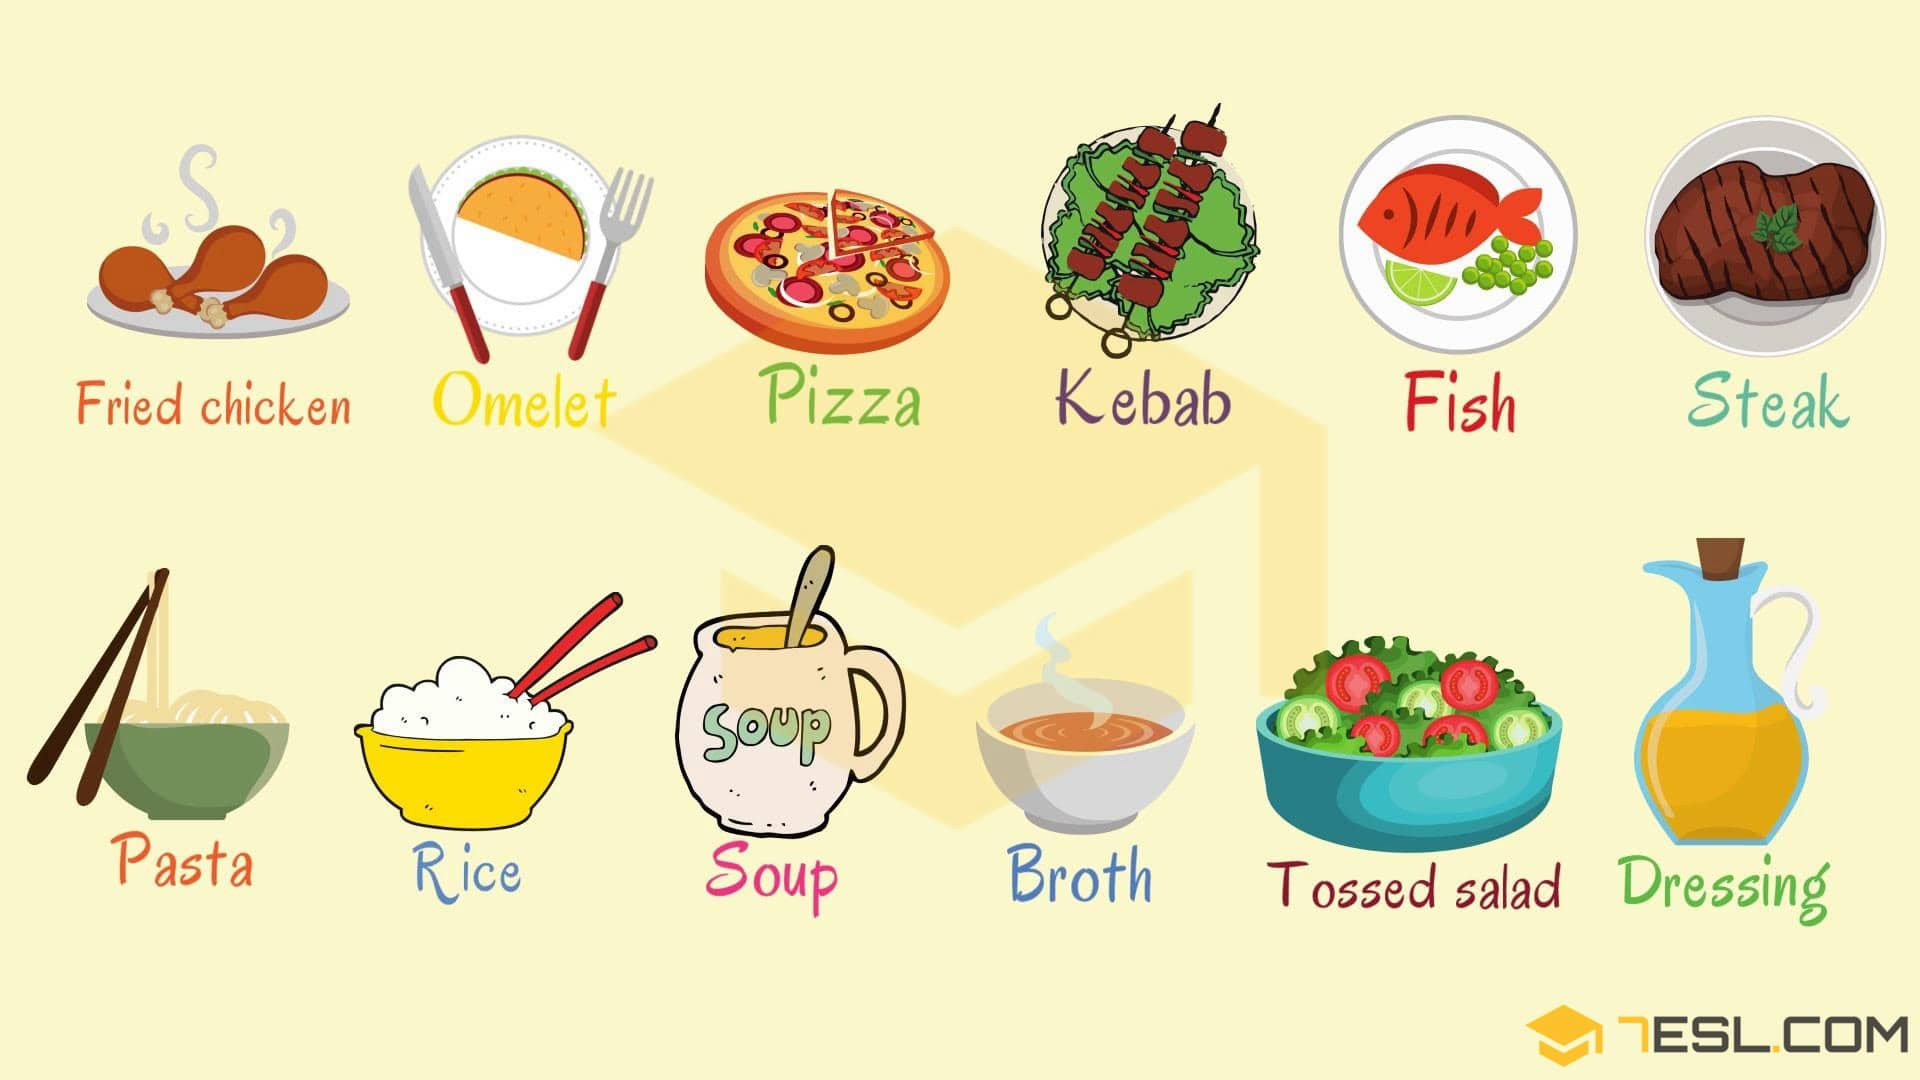 Dinner Food List: Useful List of Dinner Foods with Pictures